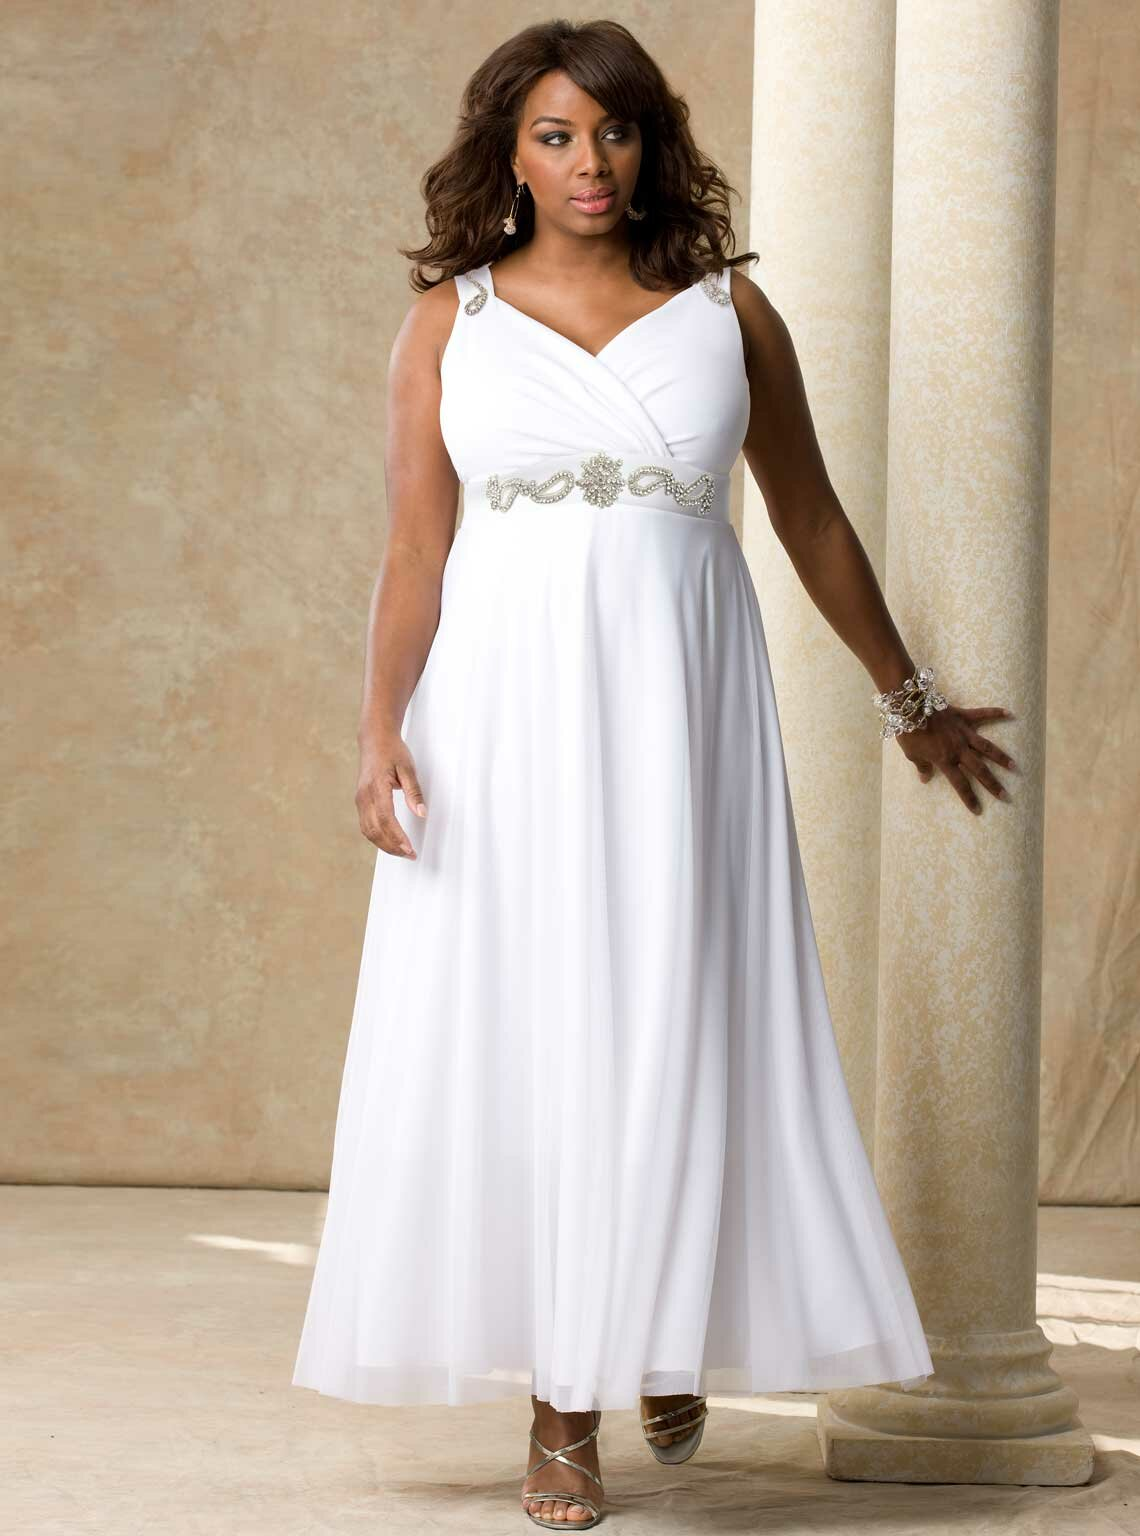 Summer wedding dresses 2013 Photo - 3